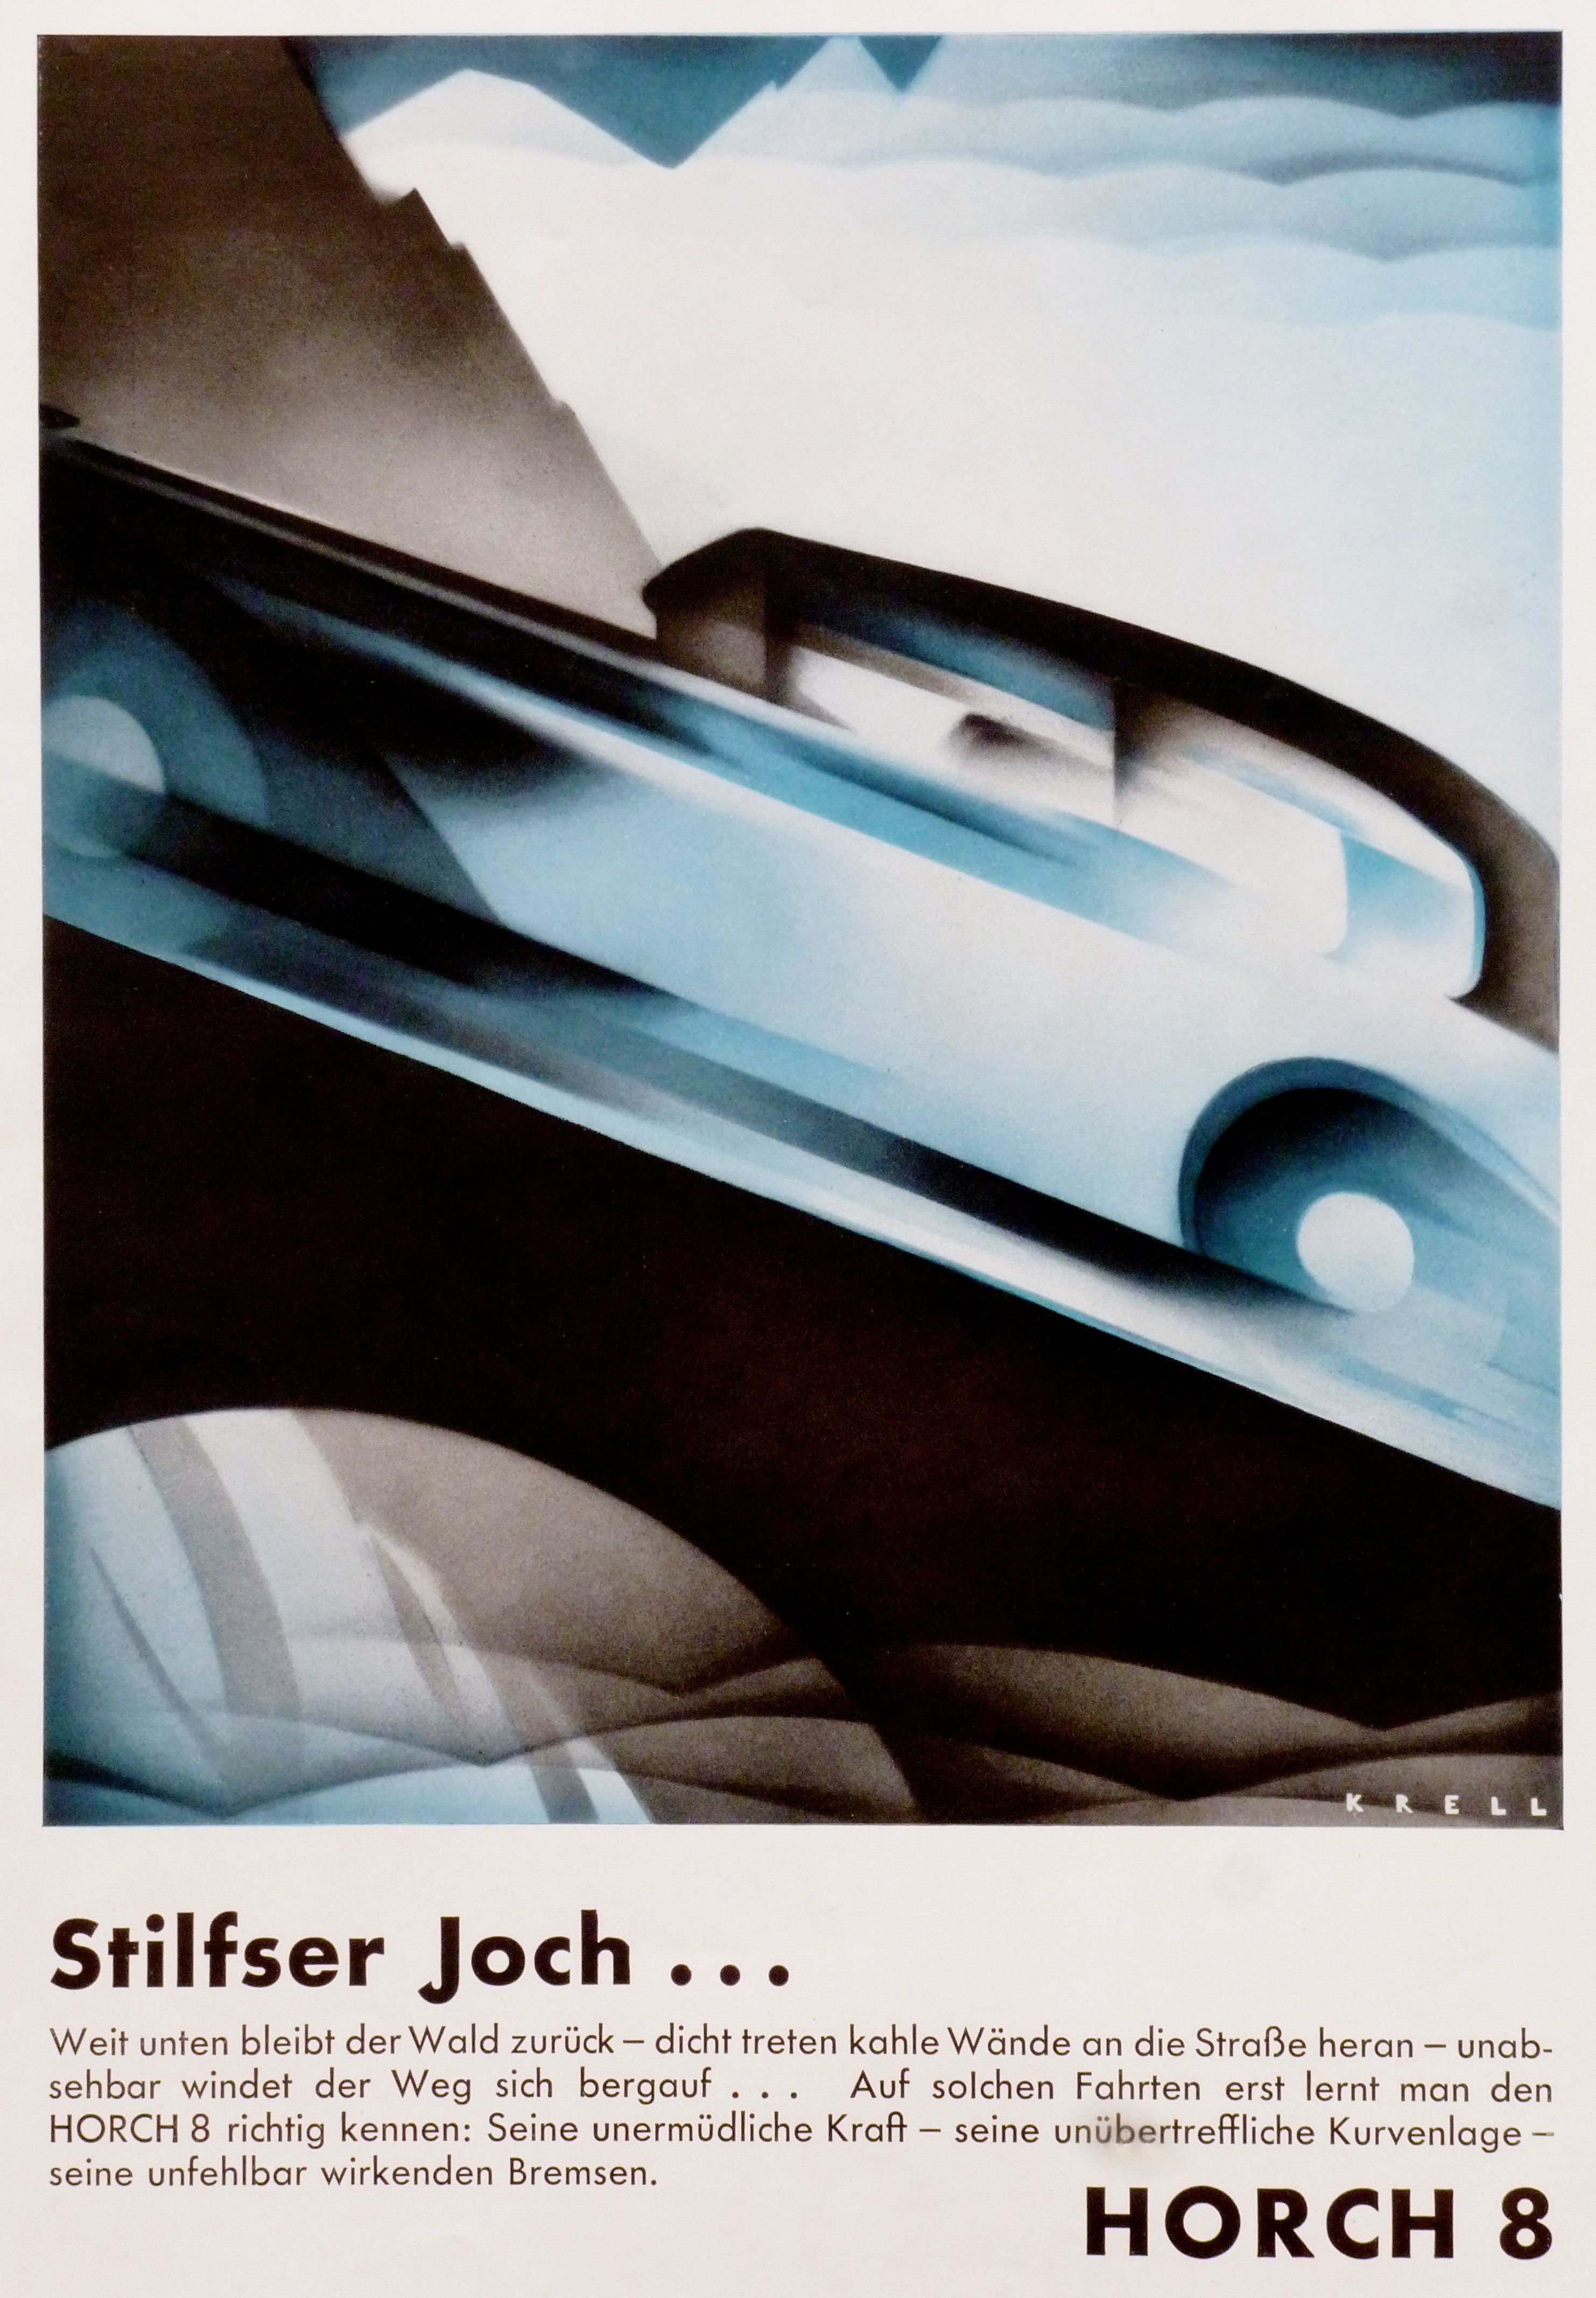 1956 ford country squire smcars net car blueprints forum - Cars Advertising Illustration Stilfser Koch By Horch 8